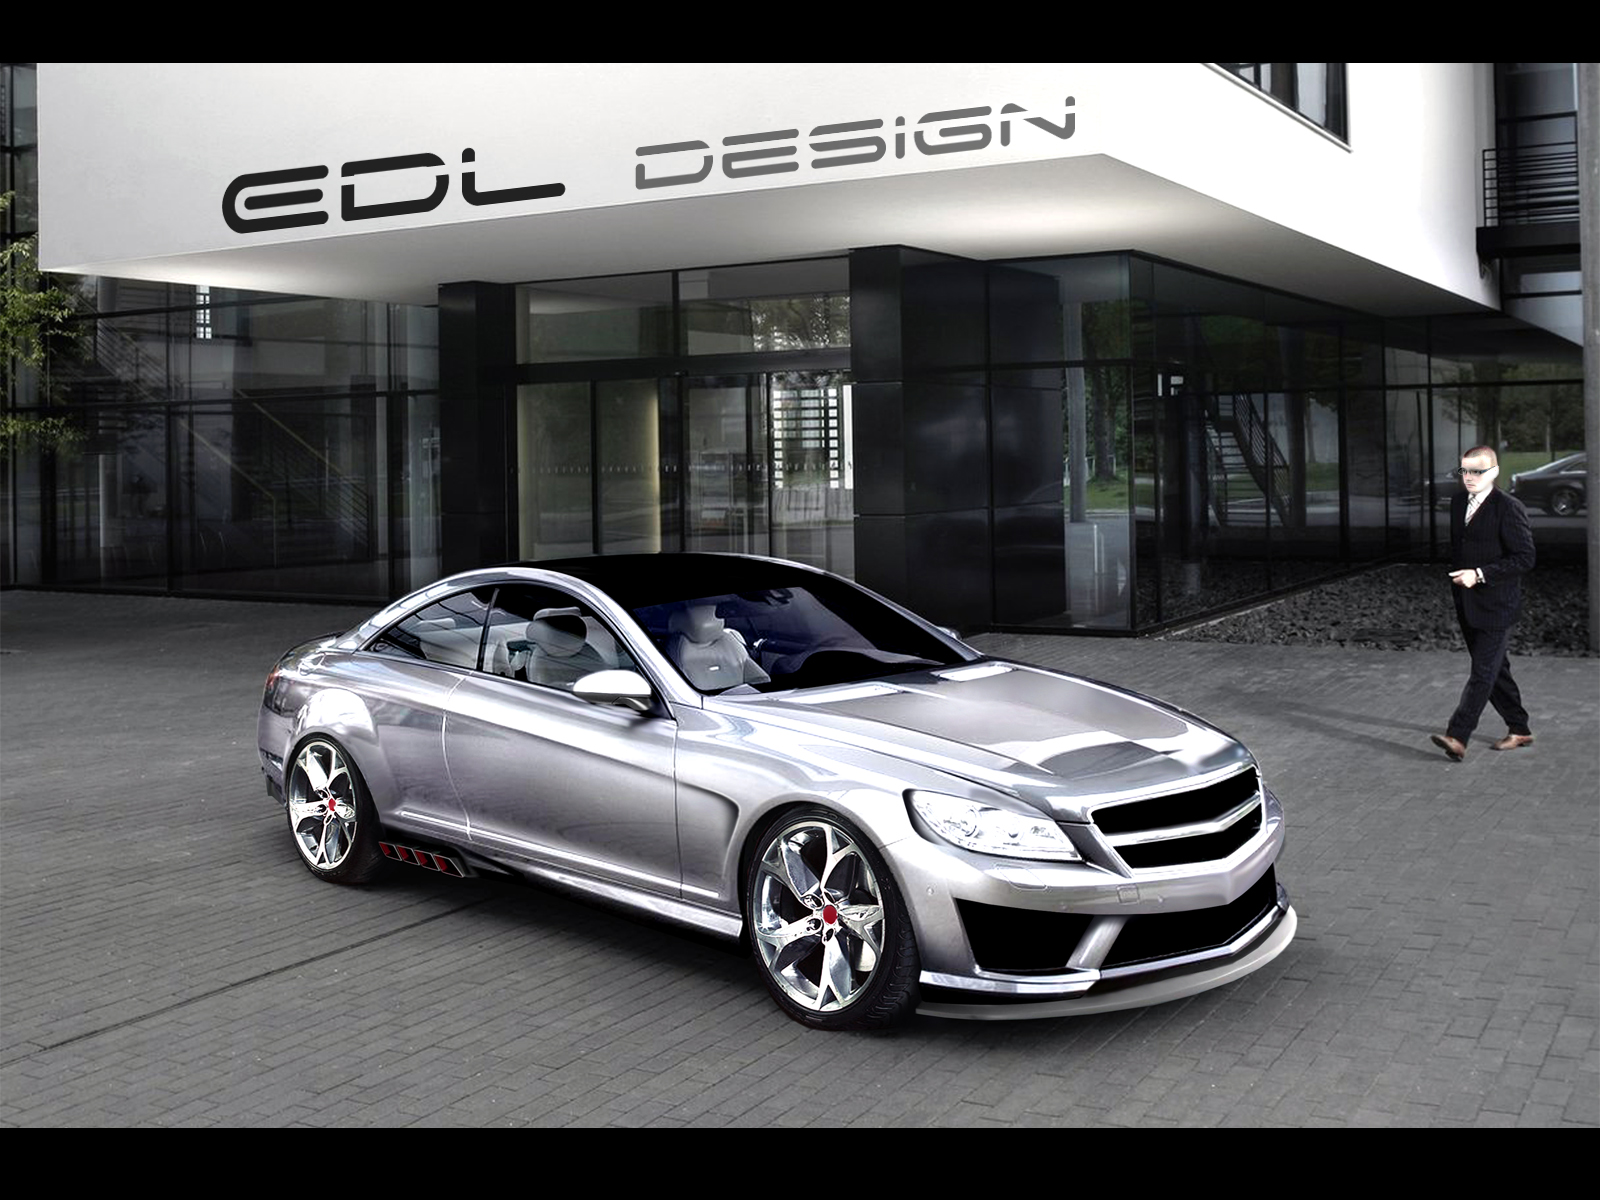 Chrome mercedes benz cl63 amg by edldesign on deviantart for Mercedes benz chrome